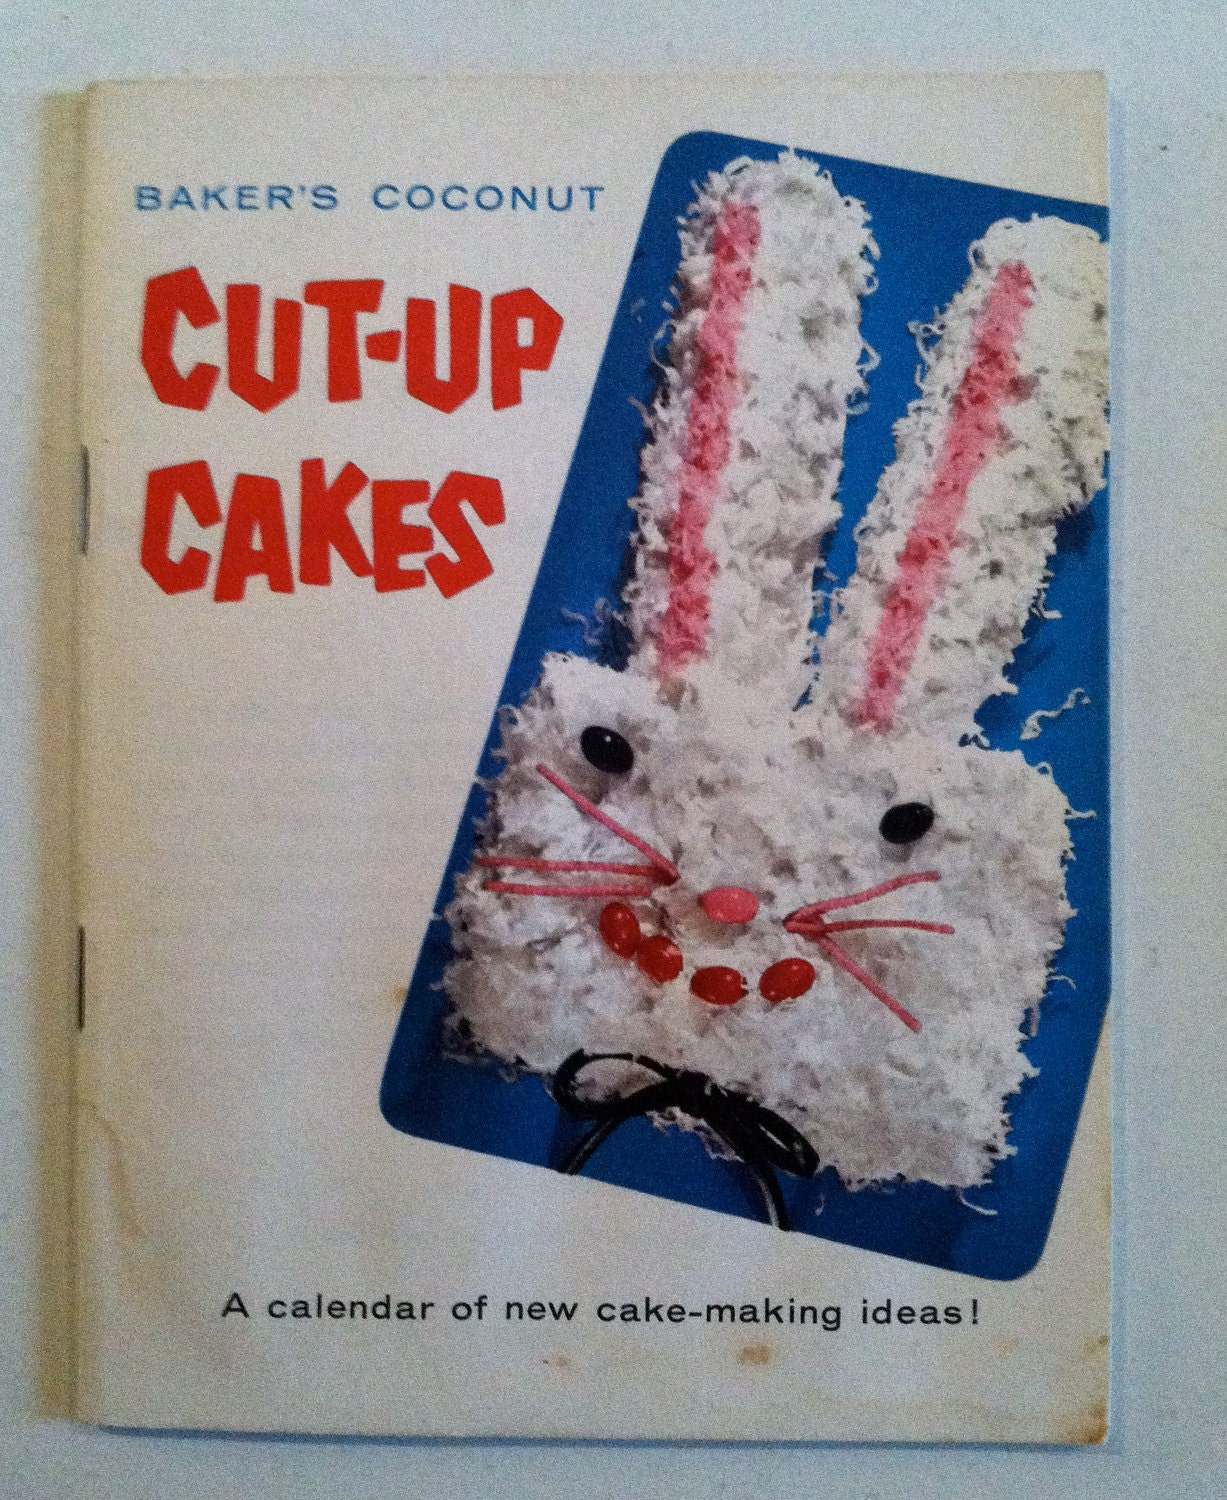 Bakers Cut Up Cakes